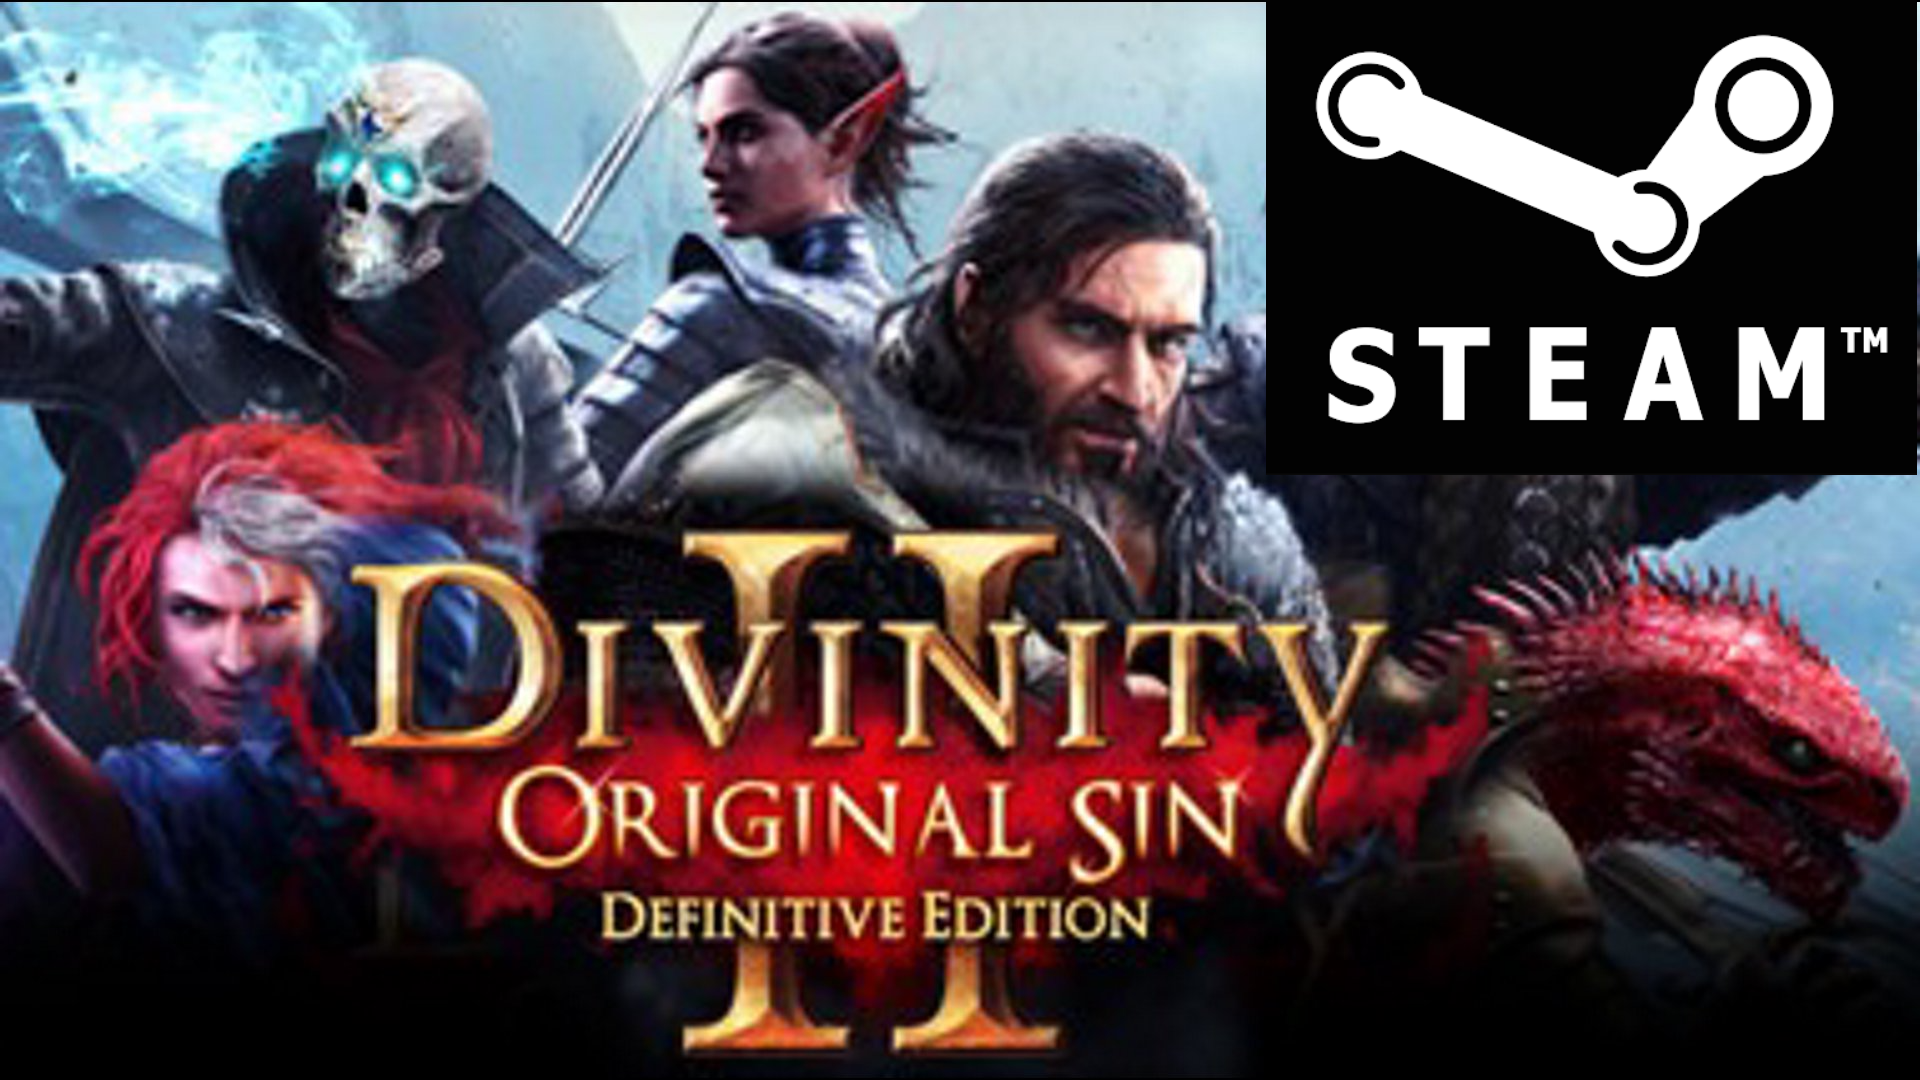 Buy ⭐️ Divinity Original Sin 2 Definitive Edition - STEAM and download